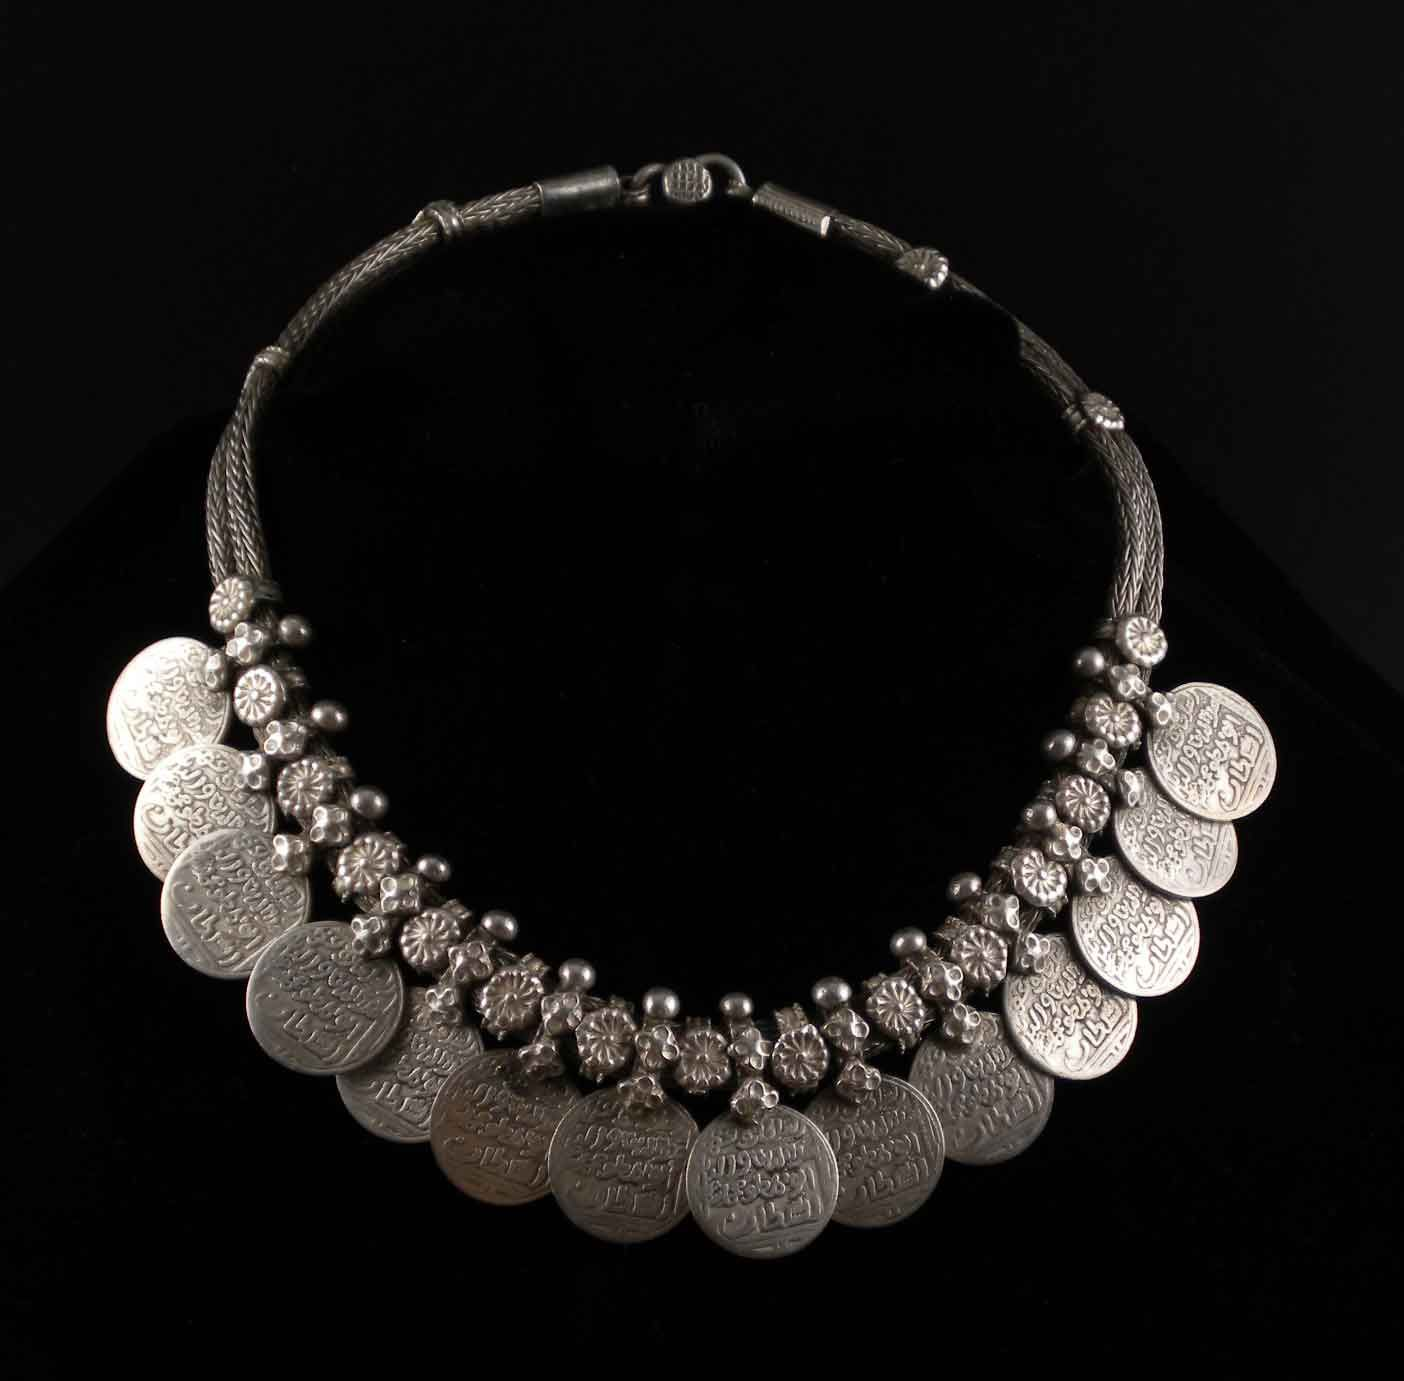 Old Silver Vintage Wedding Necklace From India By Ethnicadornment